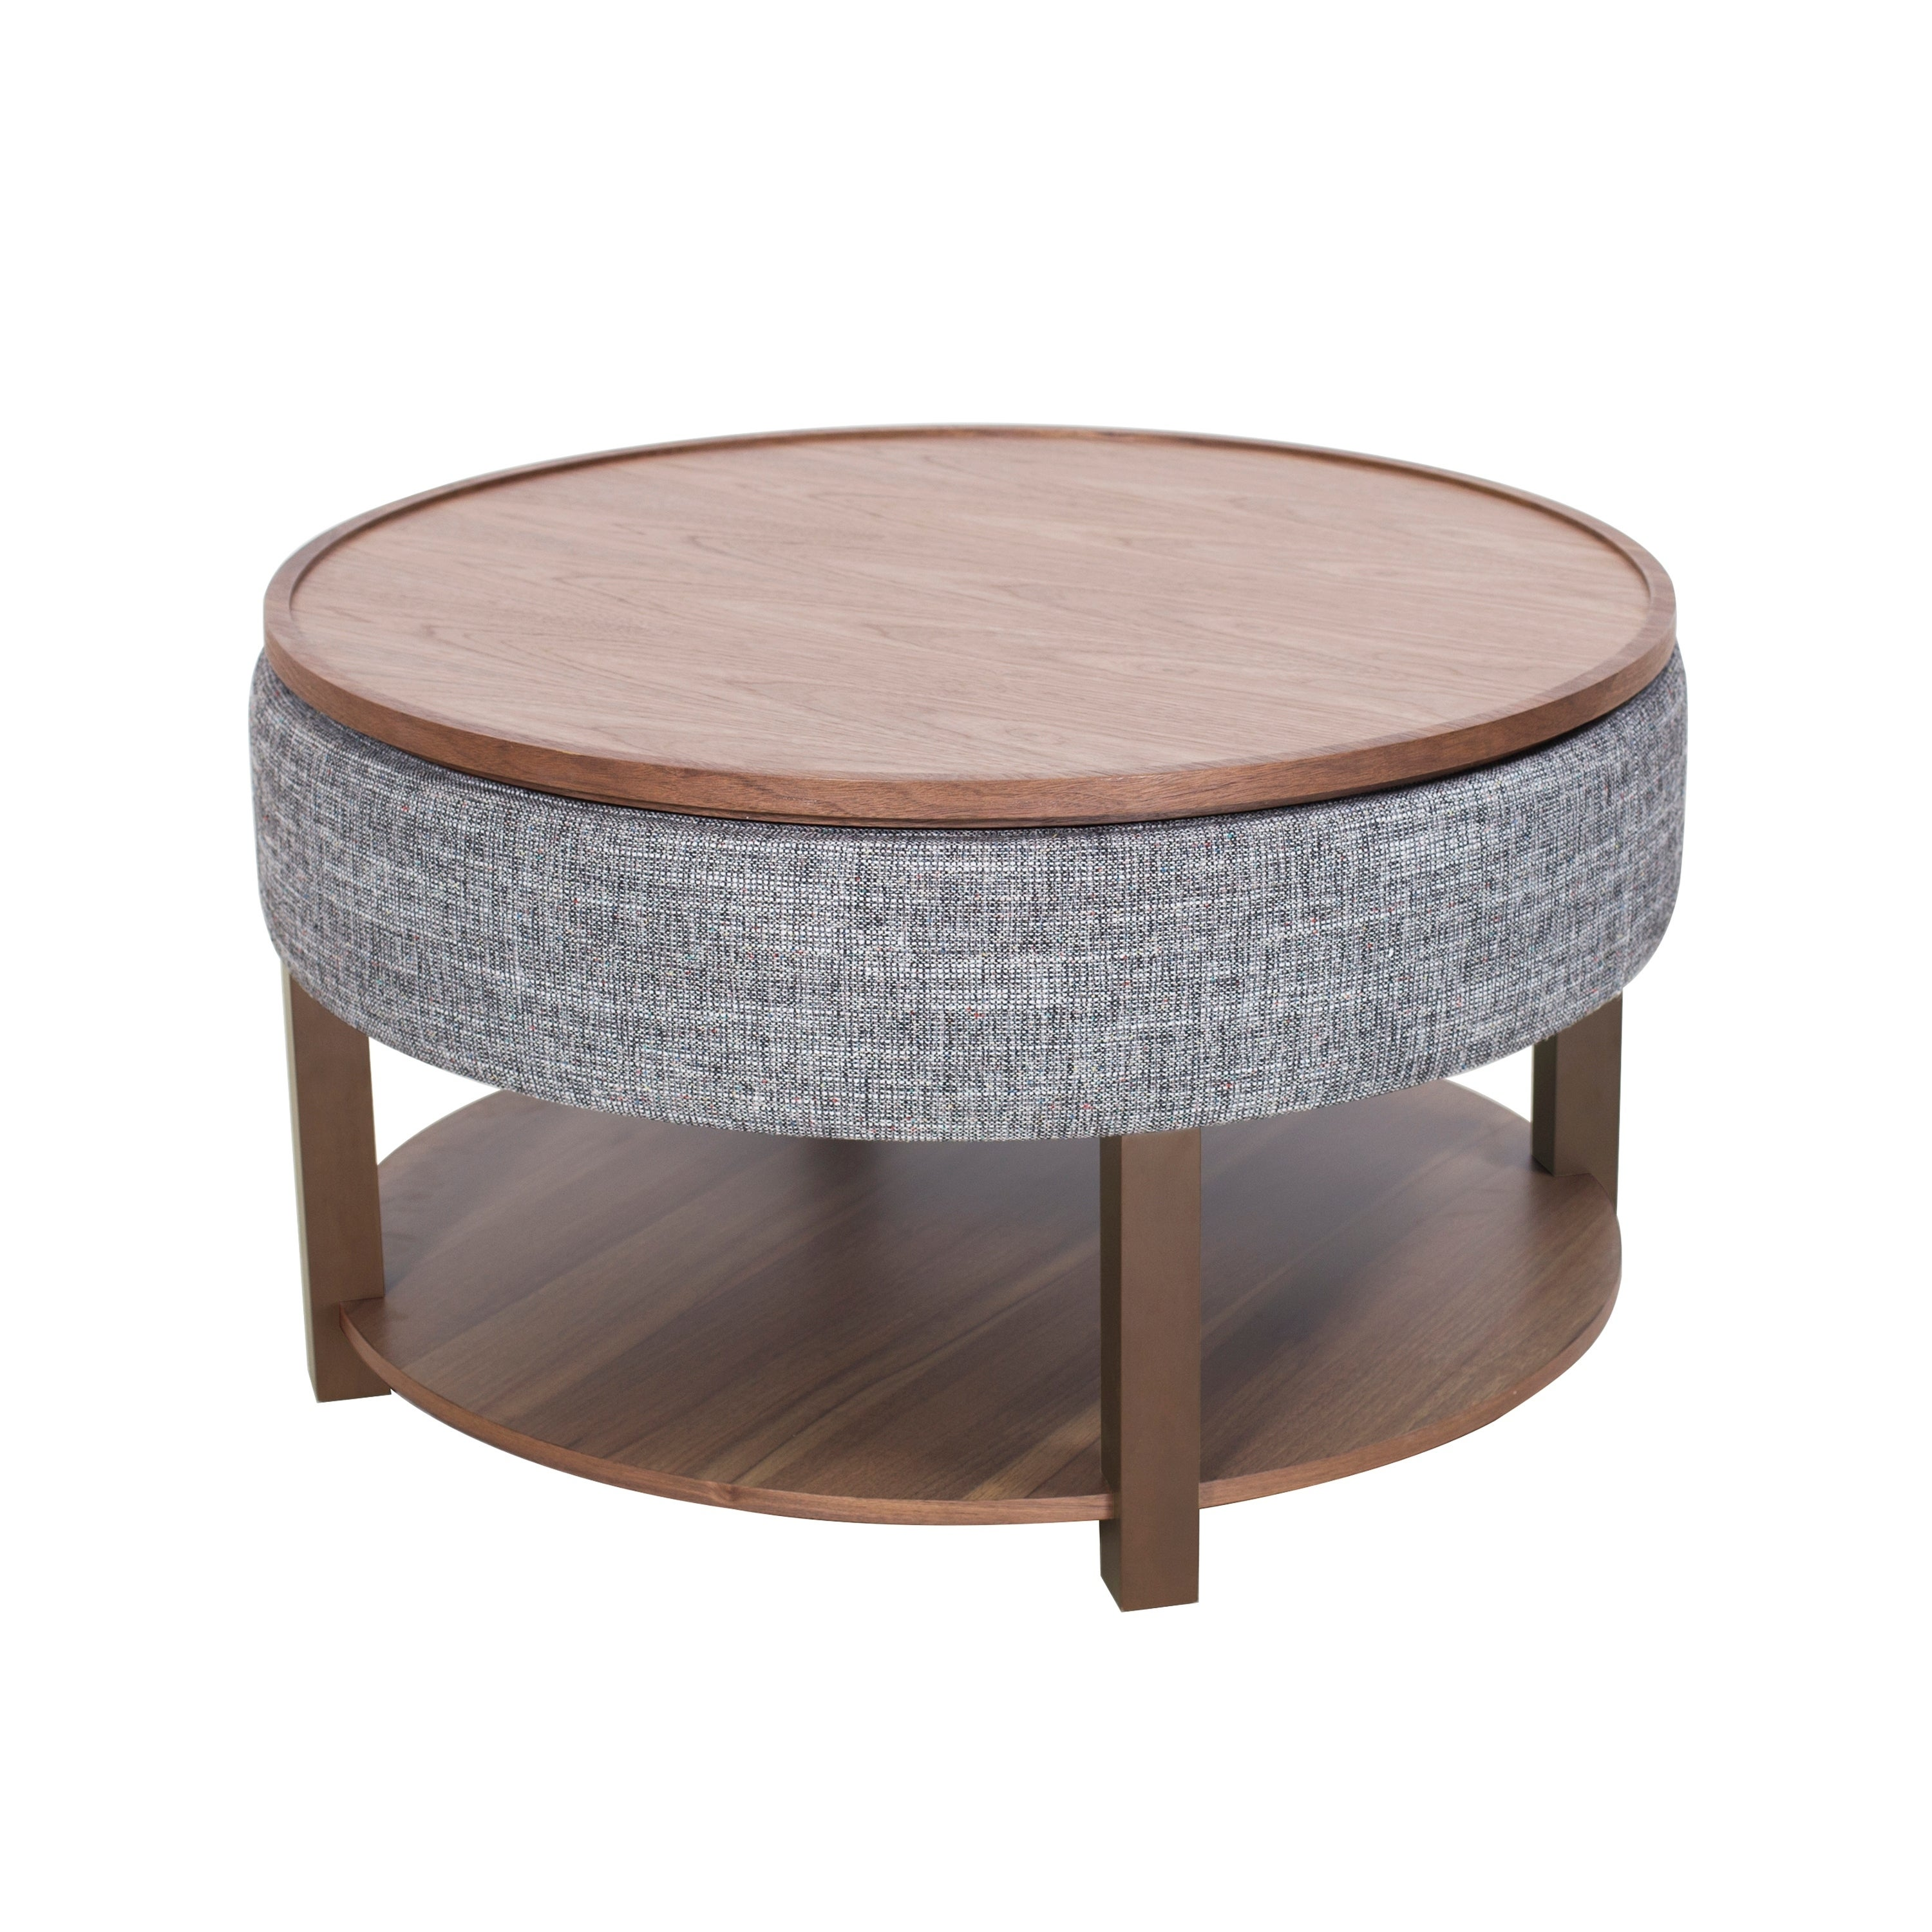 - Shop Neville Lift-top Round Storage Coffee Table - Overstock